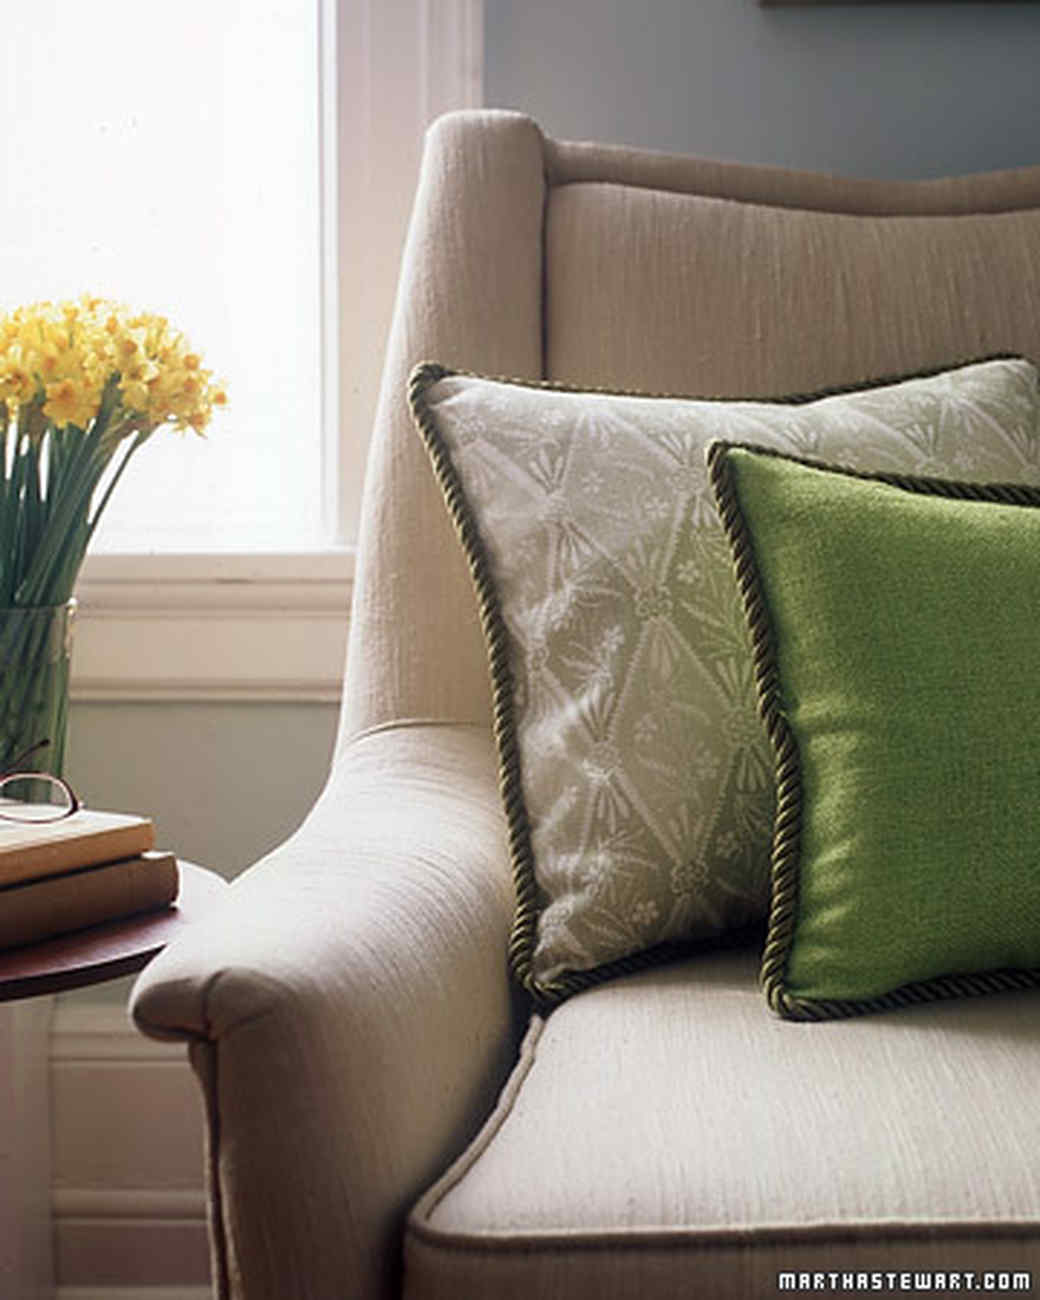 26 Pillow Projects That Are Perfectly Cozy And Comfortable | Martha Stewart